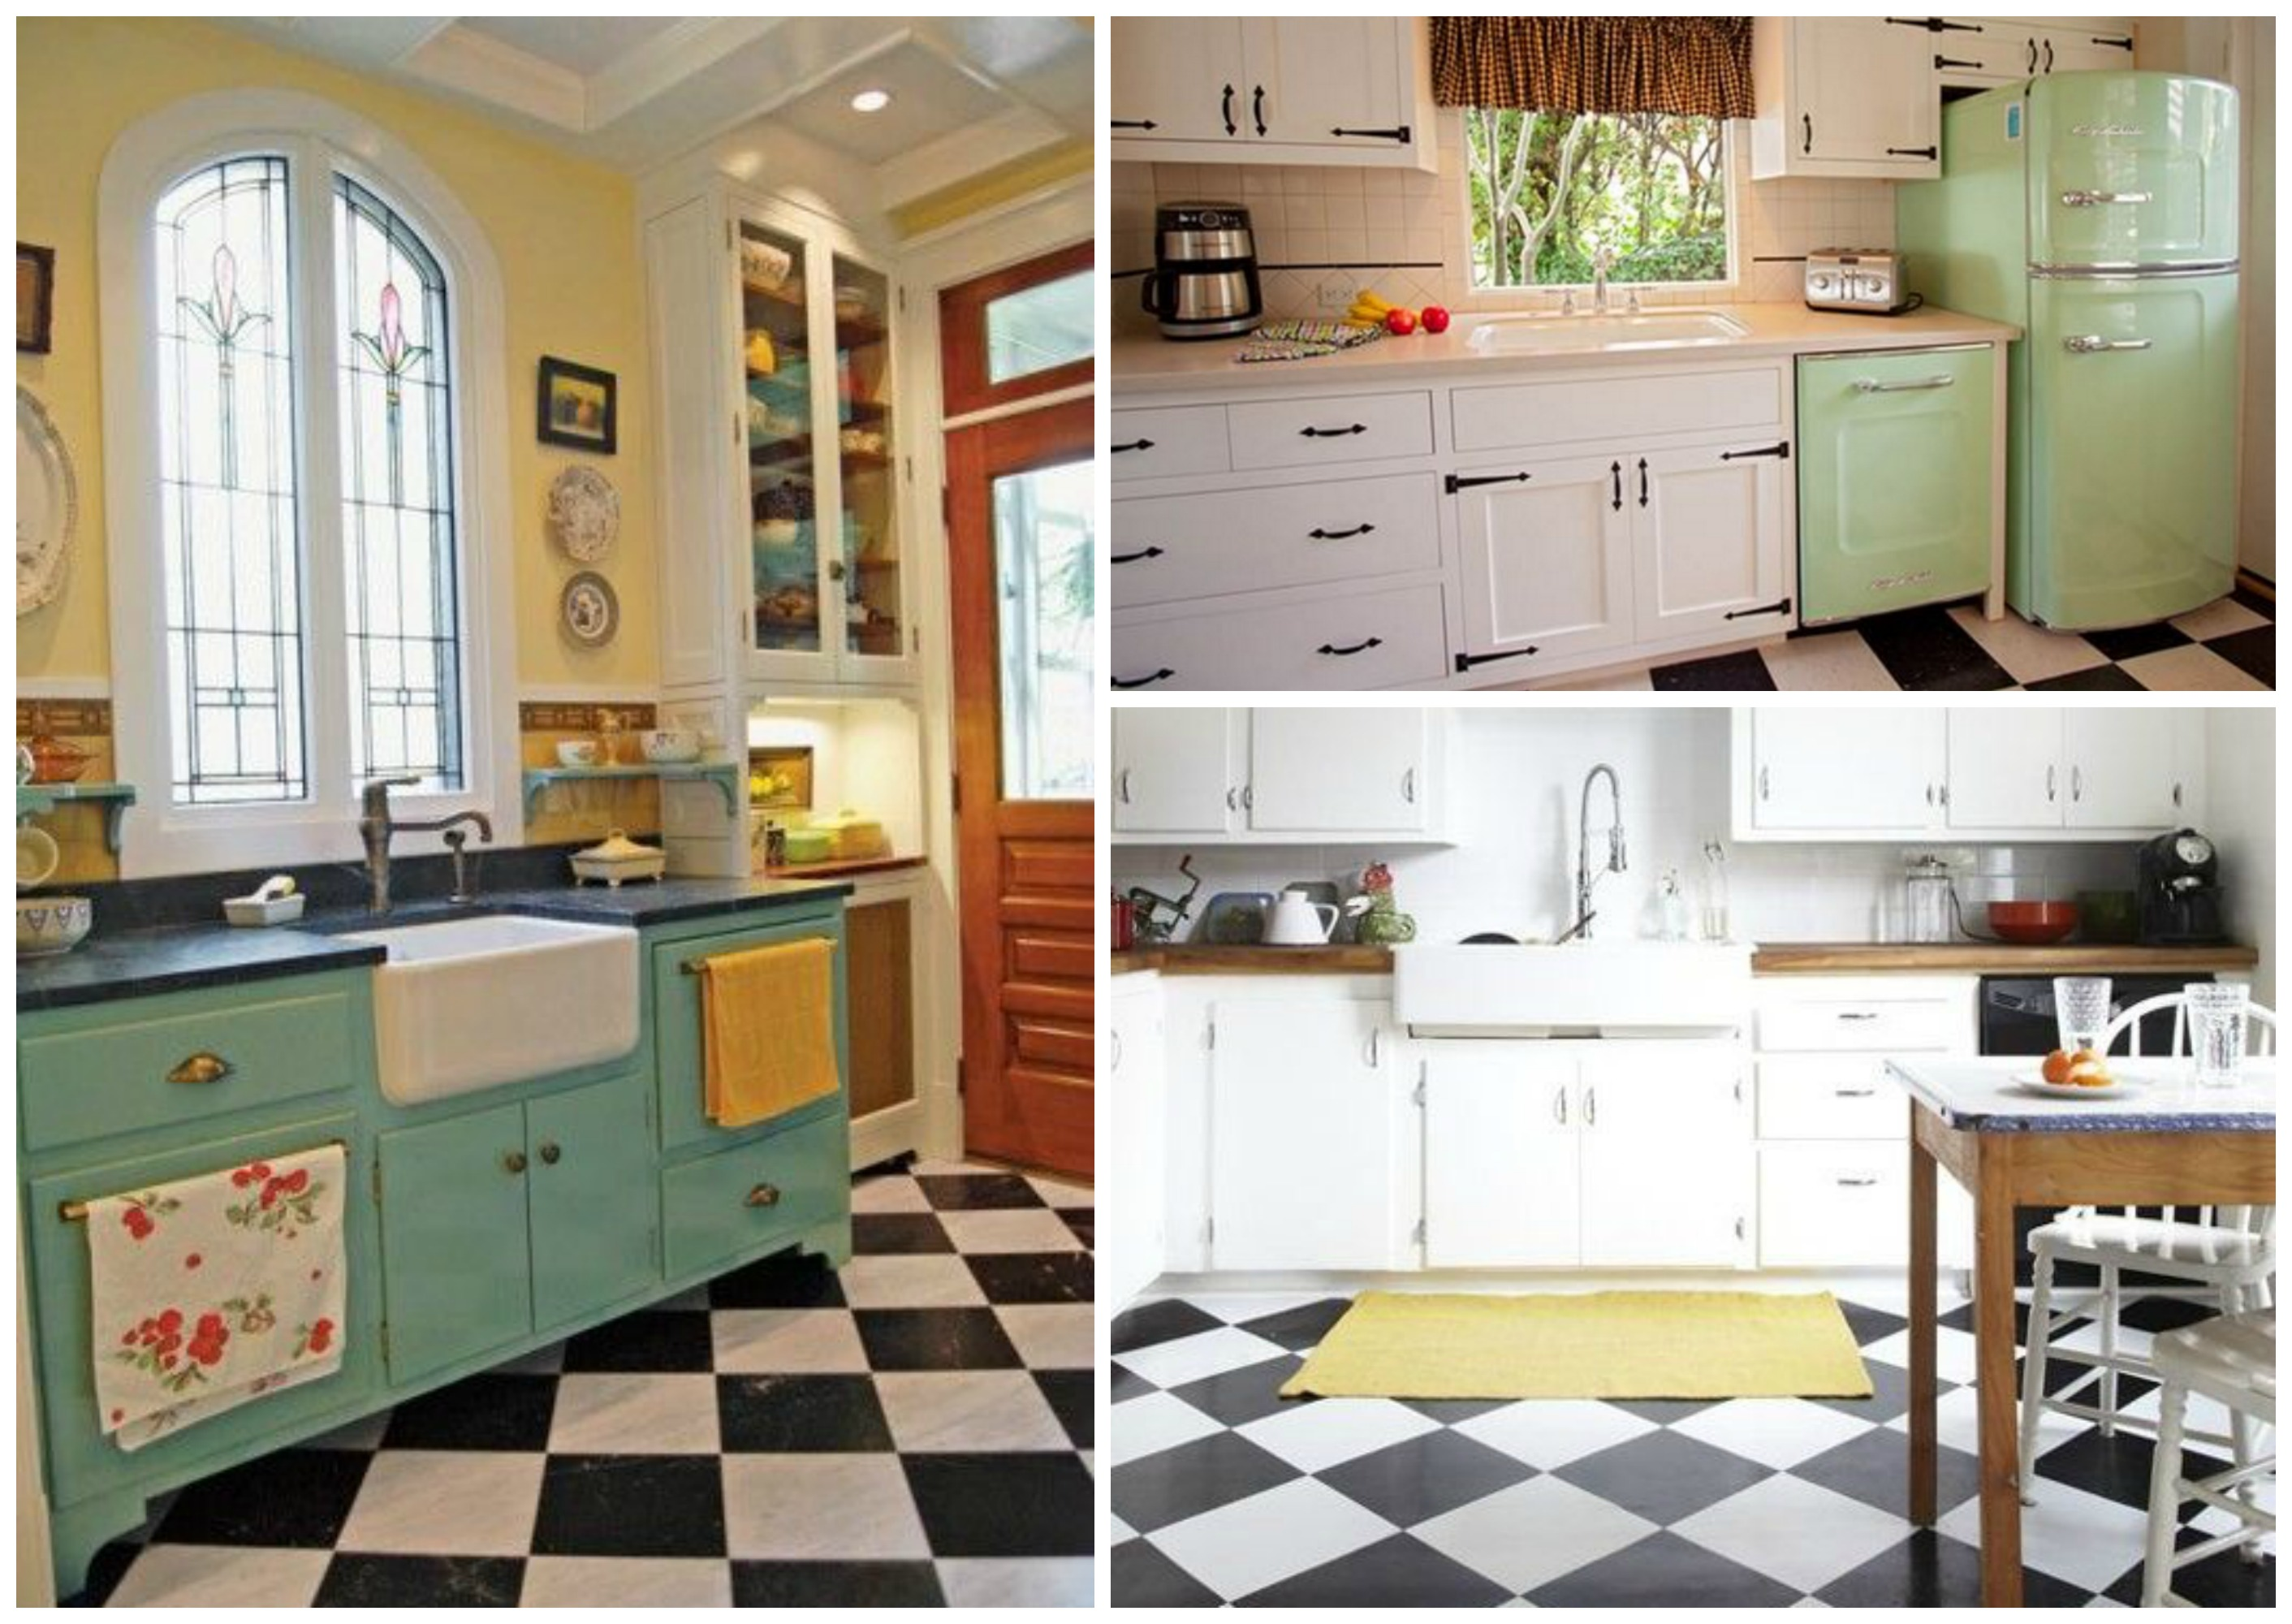 Retro Style Kitchen 15 Essential Design Elements For A Perfectly Retro Kitchen